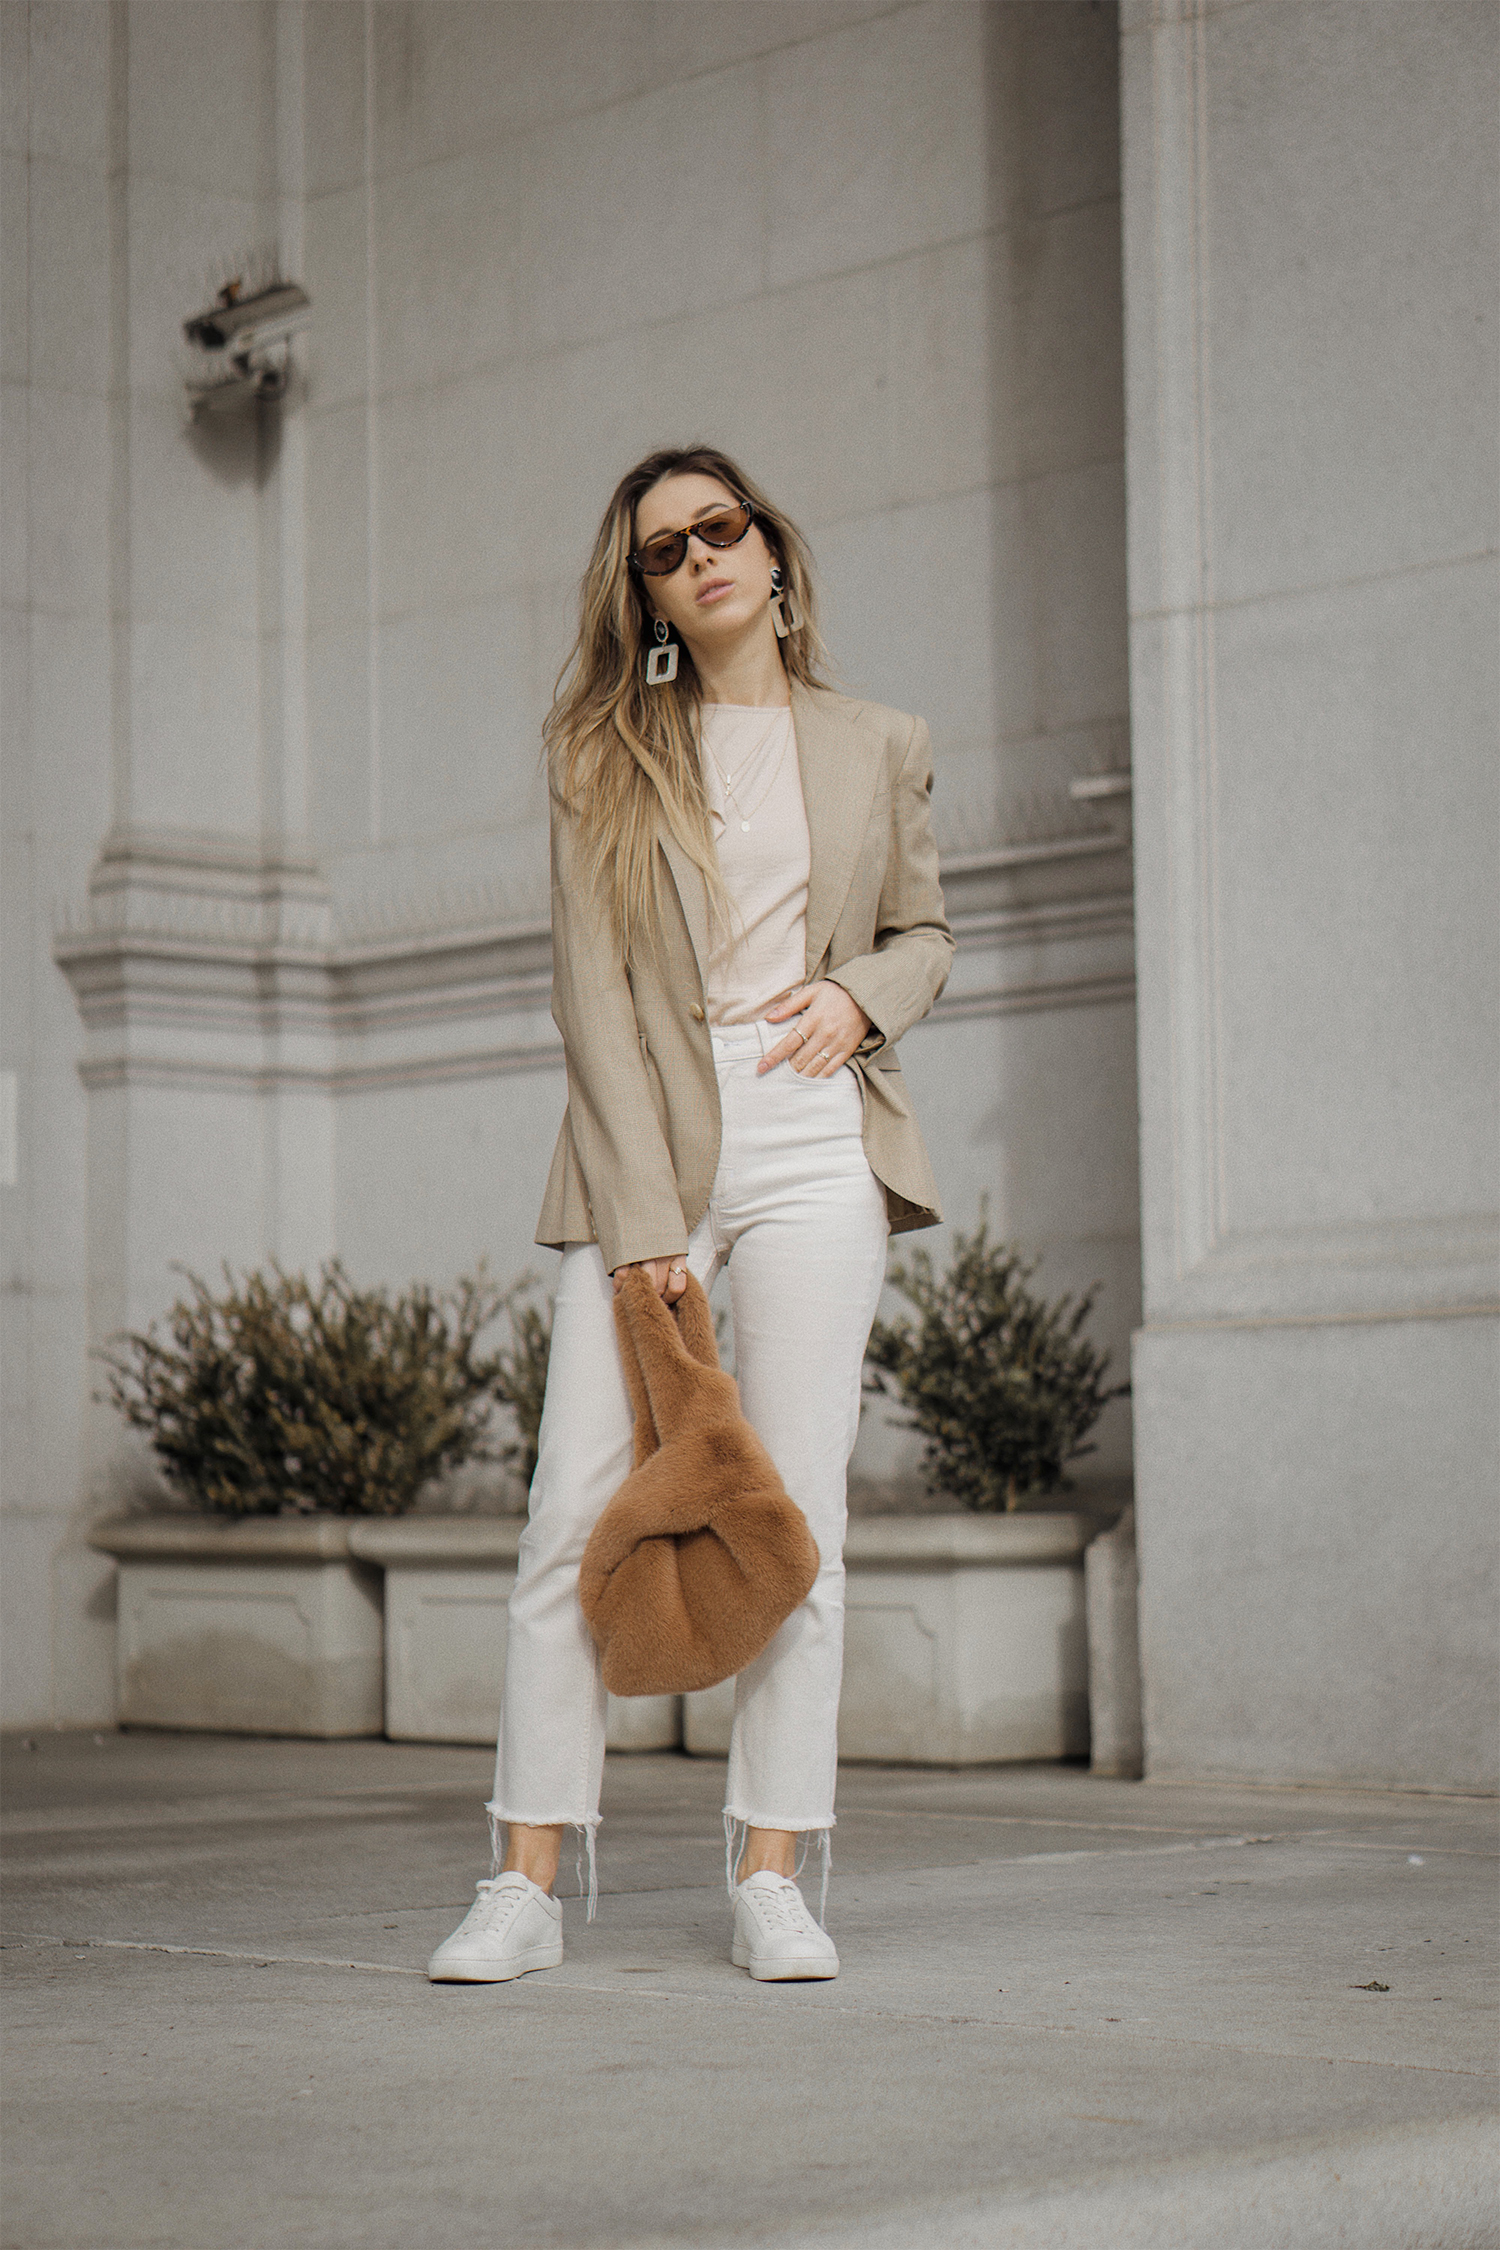 ralph_lauren_neutral_layers_outfit_fur_bag_vince_zara_trench_coat_street_style_lenajuice_thewhiteocean_04